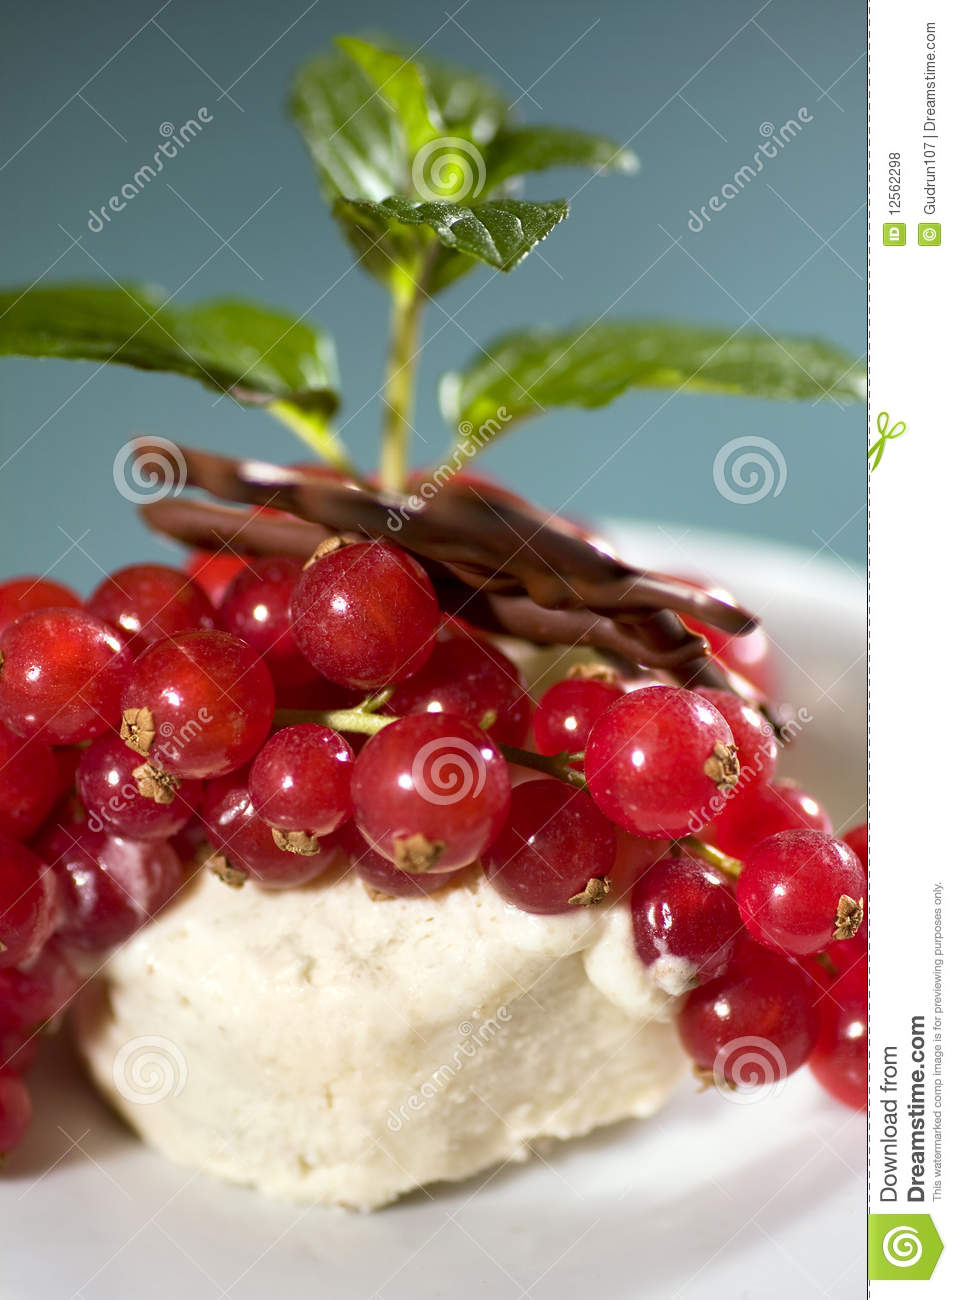 Chestnut Icecream With Redcurrants Royalty Free Stock Photos - Image ...